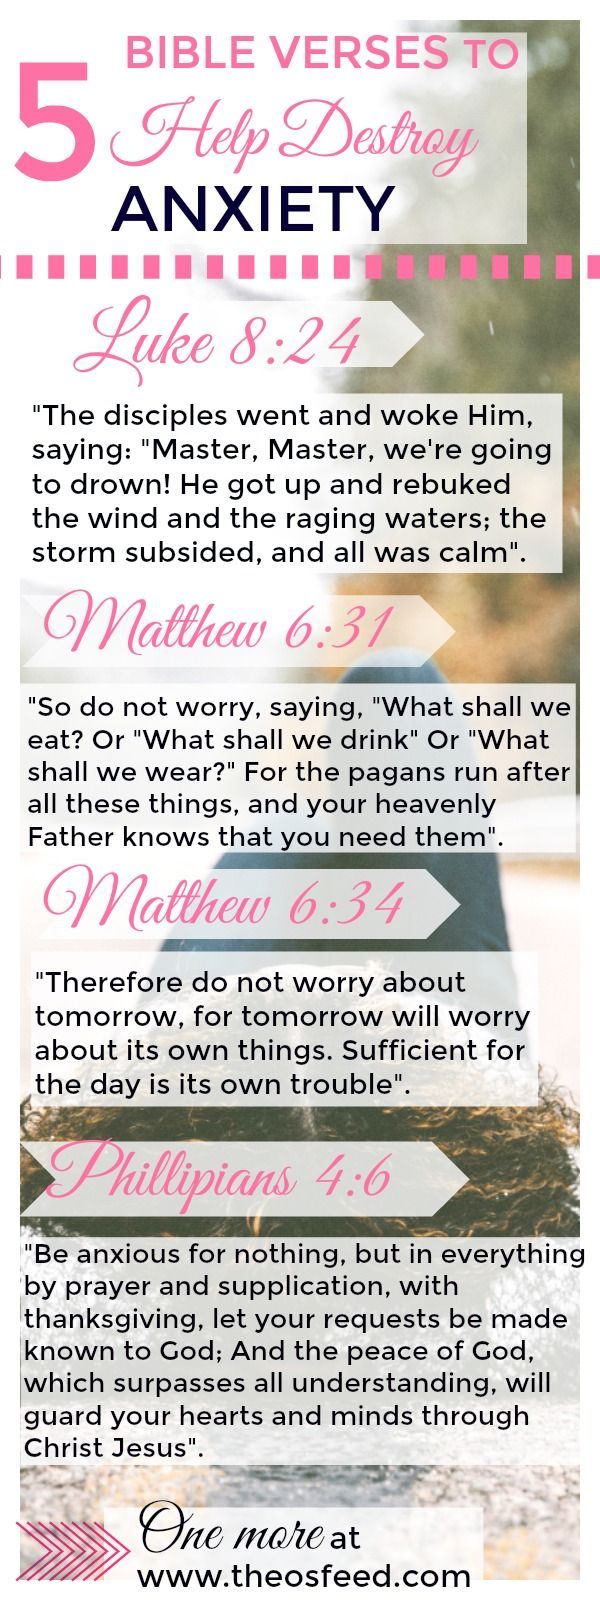 Totally LOVED these 5 Bible verses to take my anxiety away! They are SO much better than any anxiety pill! I won't dare touch those anxiety pills again! I LOVE the Lord Jesus! Thank you for taking my anxiety and all my problems away! Glory to God! #anxiety #mentalhealth #health #LOVE #GOALS #Bibleverses